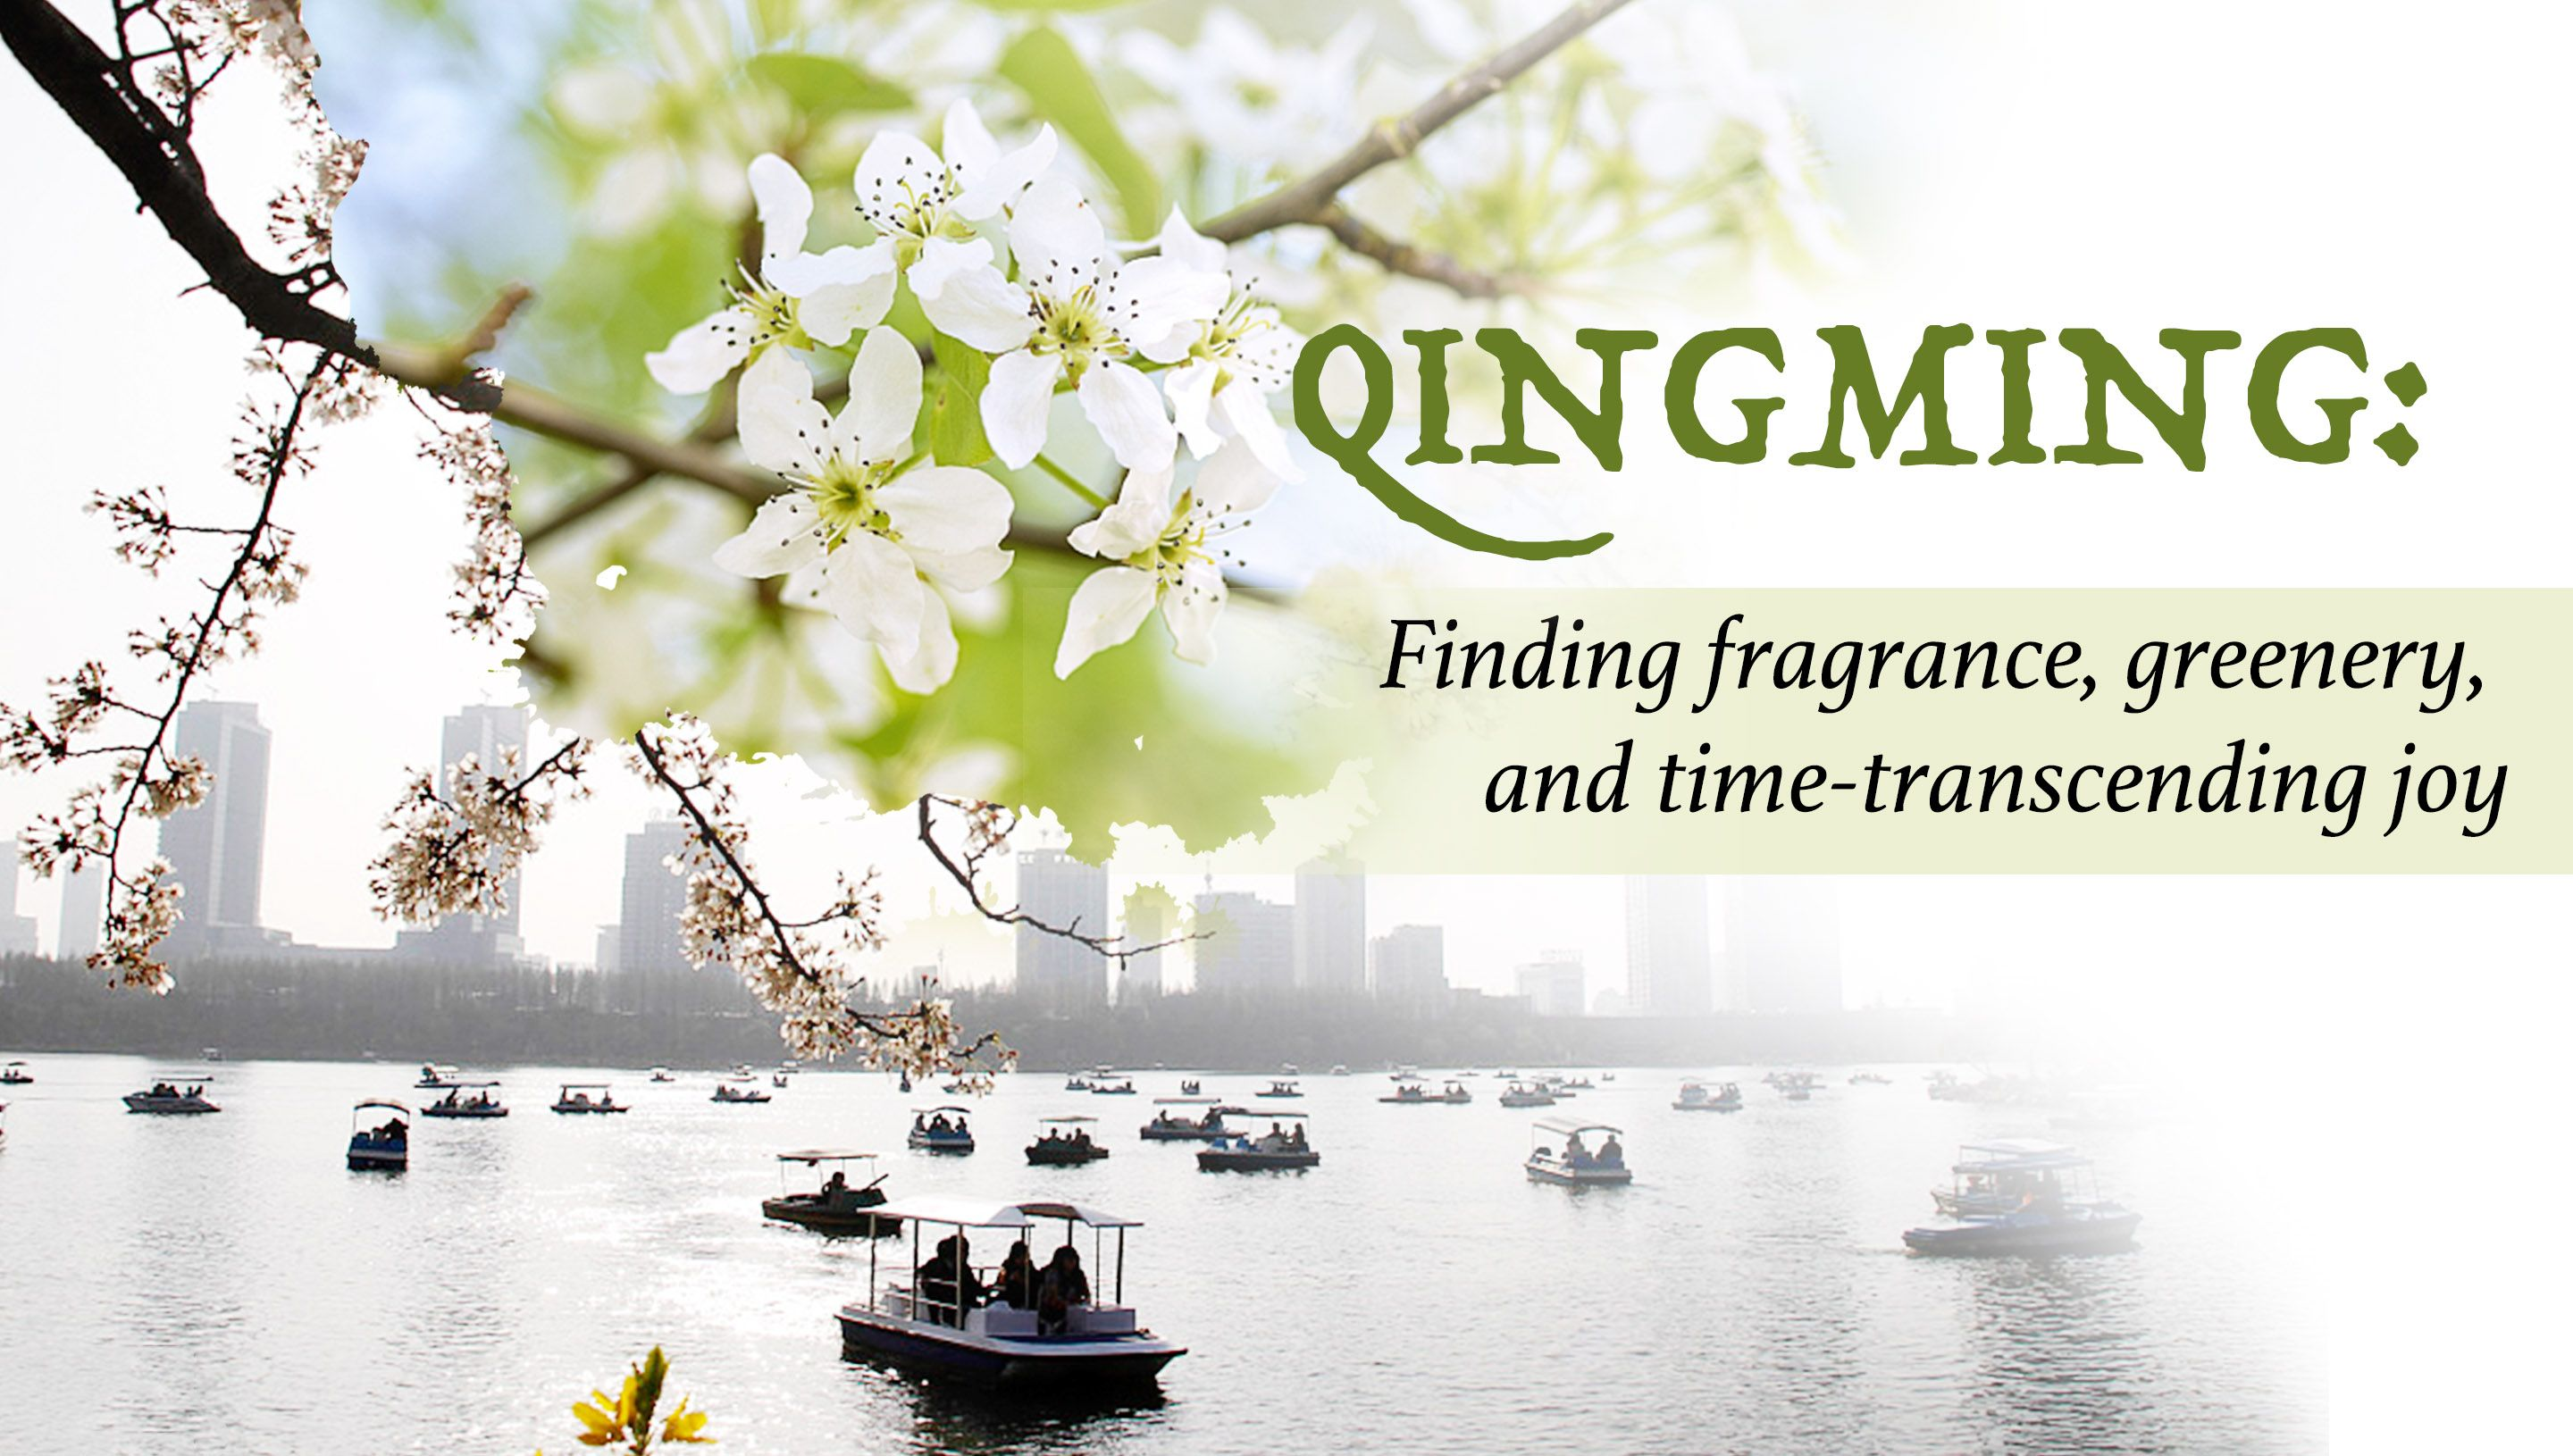 Qingming: Finding fragrance, greenery and time-transcending joy